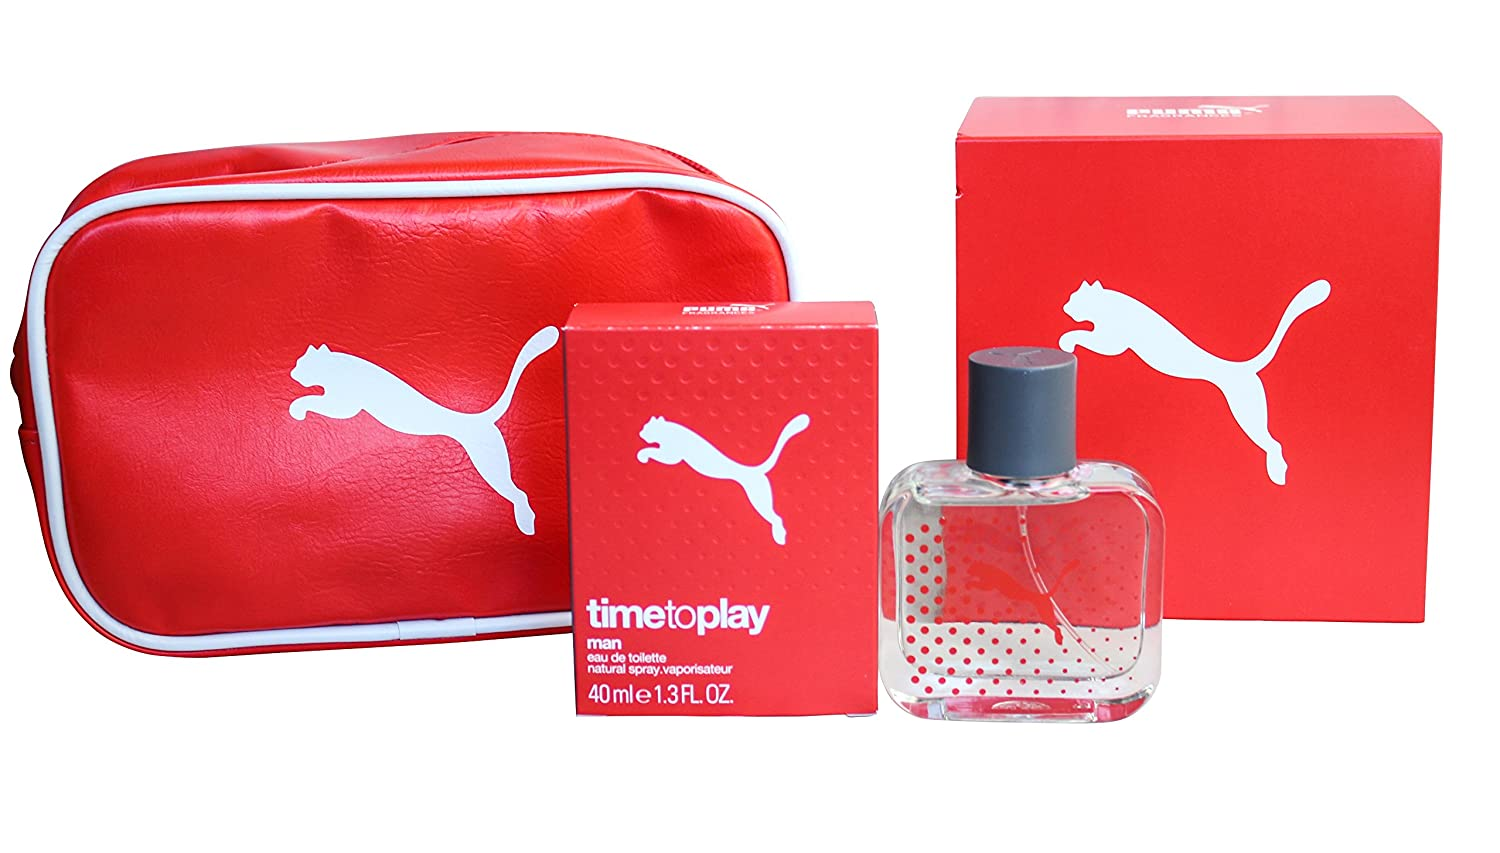 Puma Time to Play Perfume & Bag Gift Set for Men: 40ml EDT + Toiletry Bag